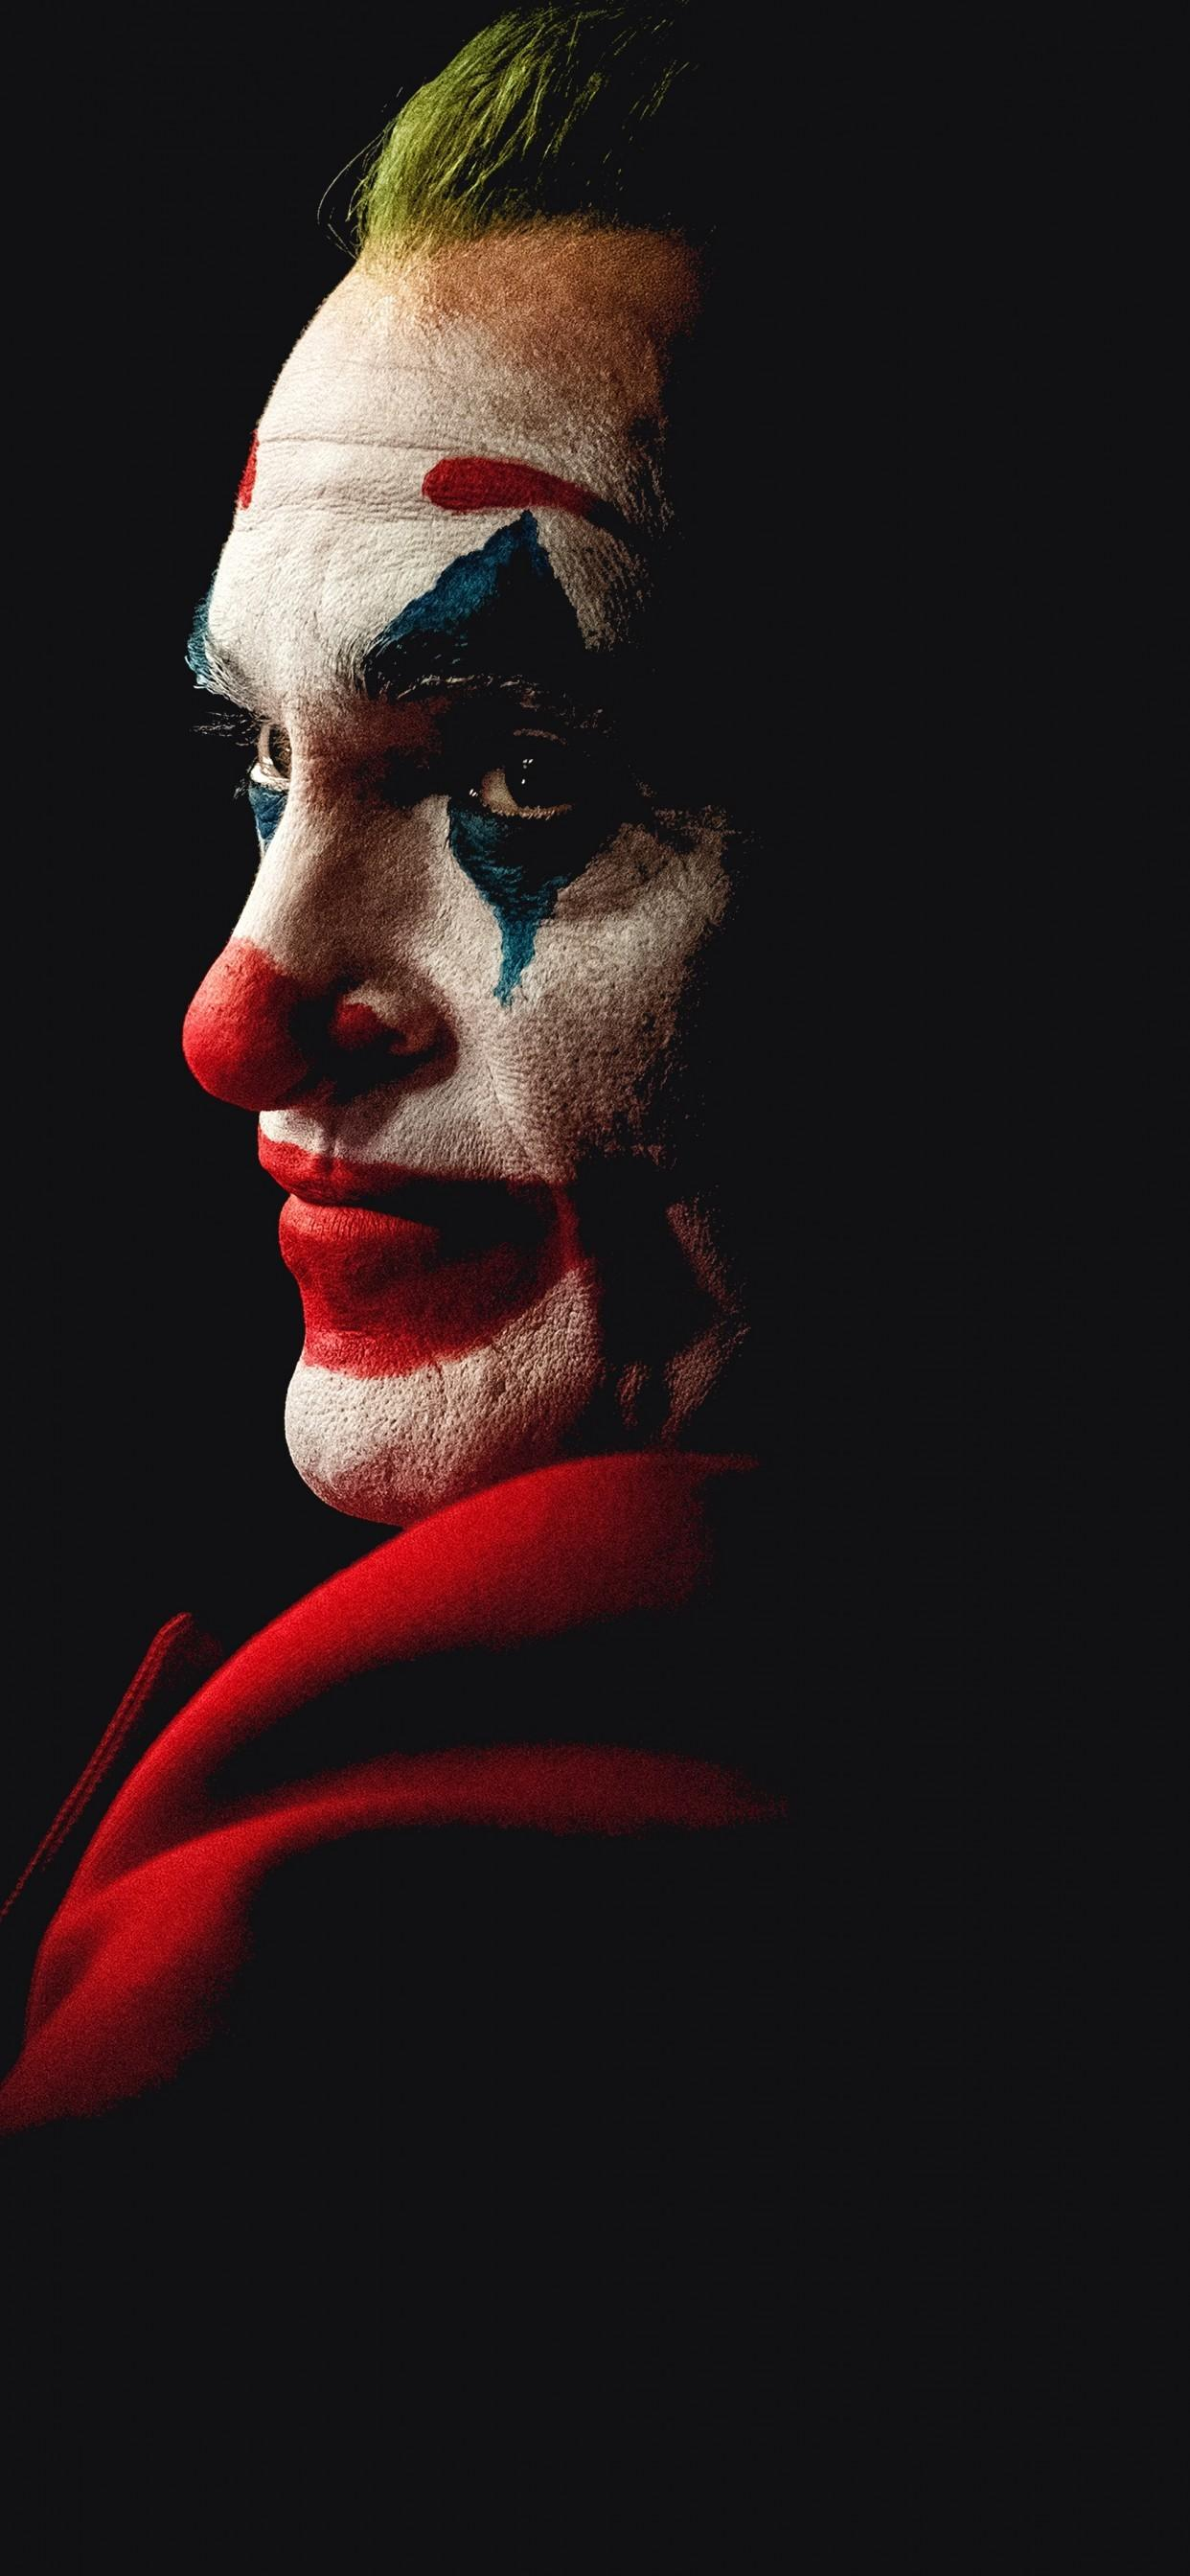 Download 1242x2688 Joker 2019, Joaquin Phoenix Wallpapers